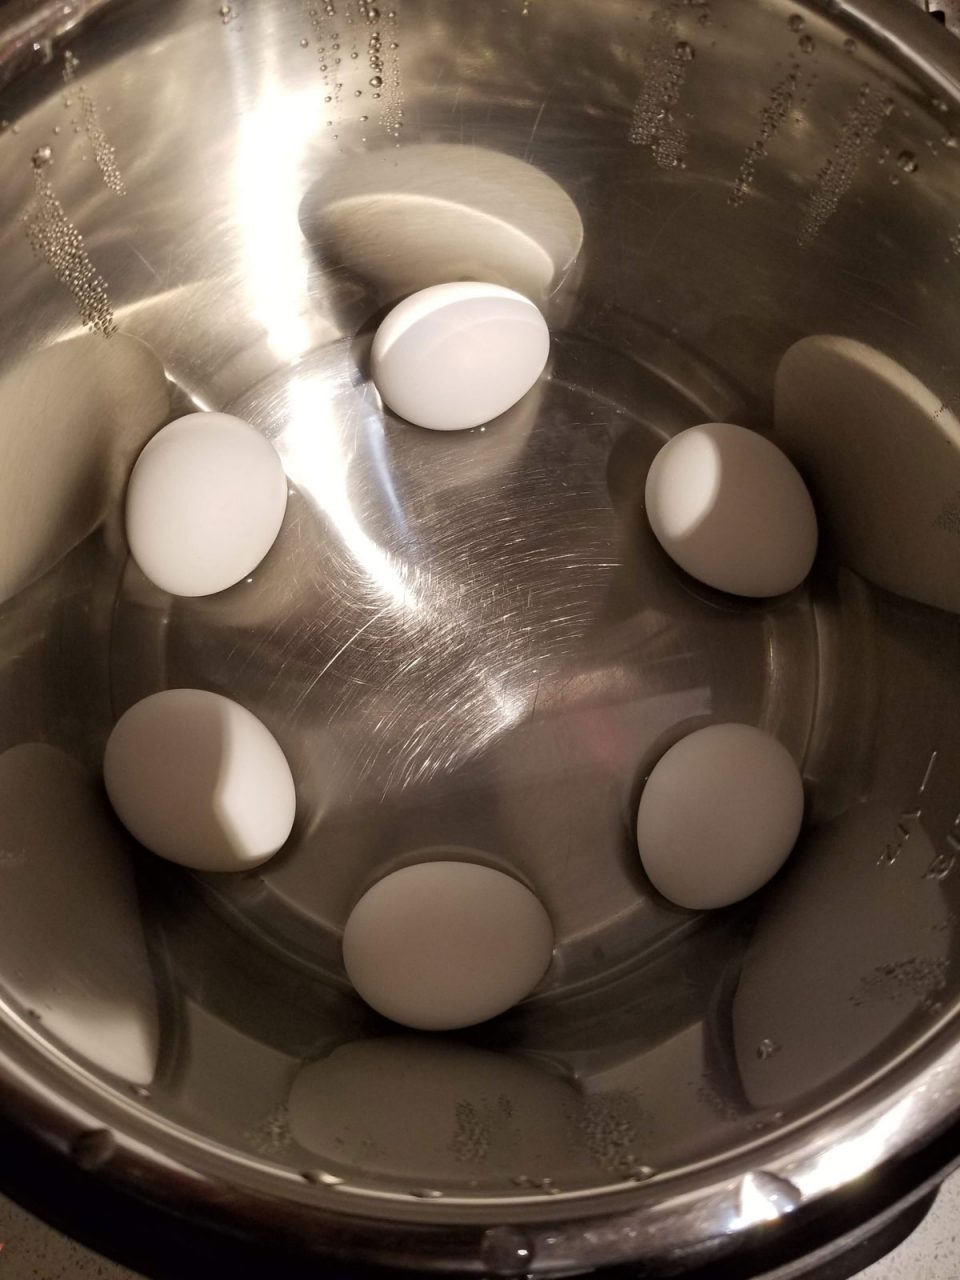 instant pot boiled eggs without rack